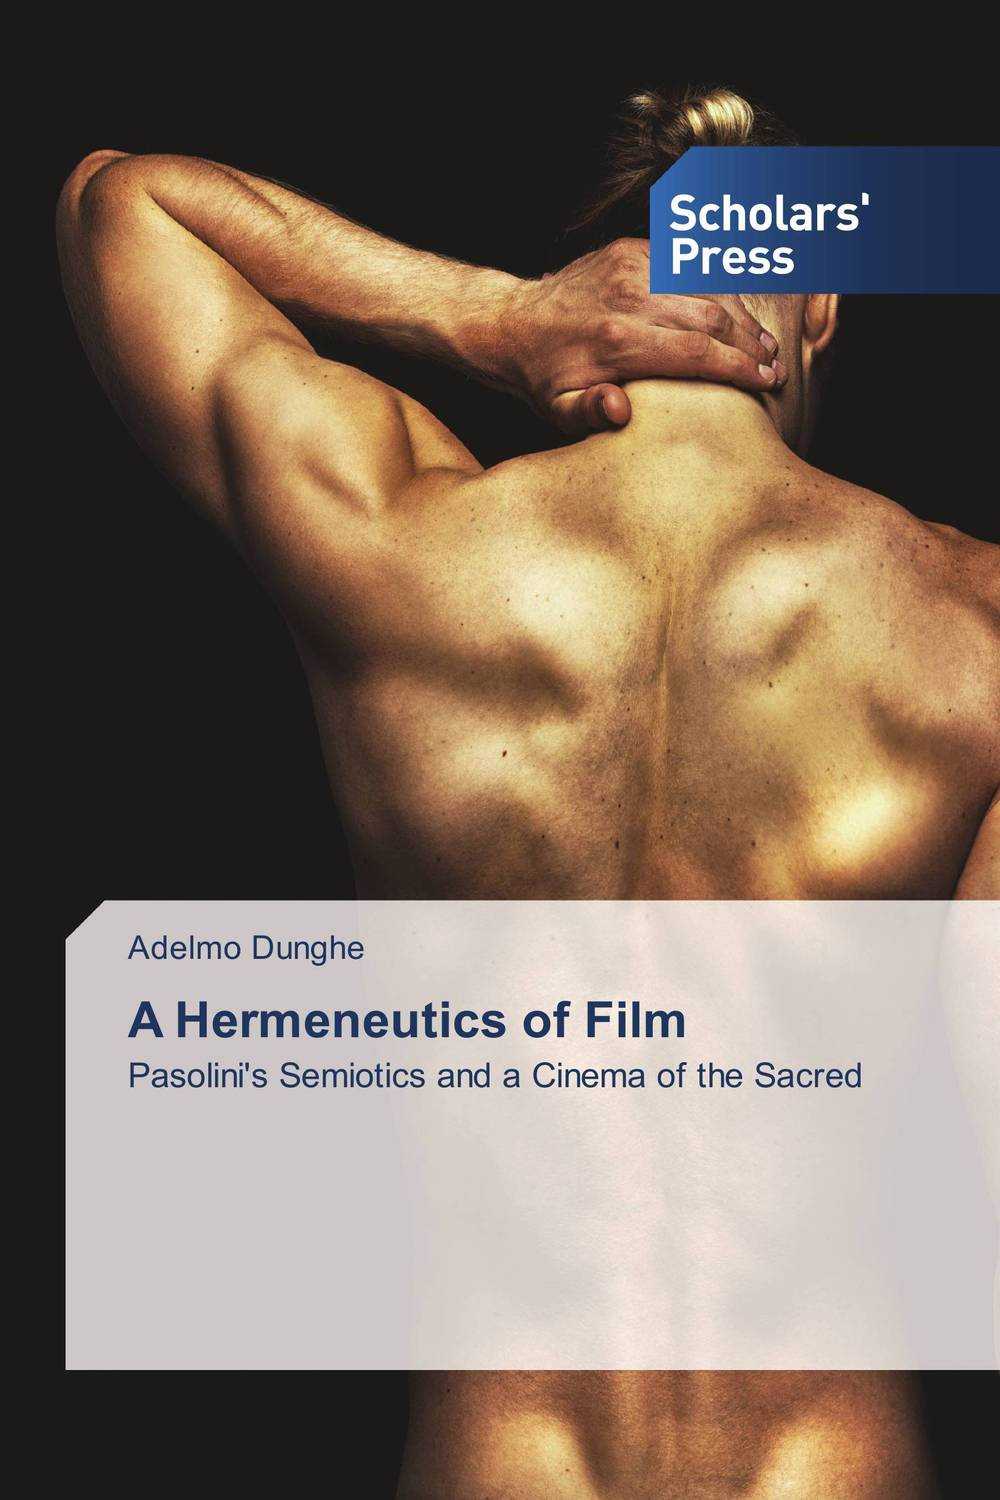 A Hermeneutics of Film g shapiro nietzschean narratives paper